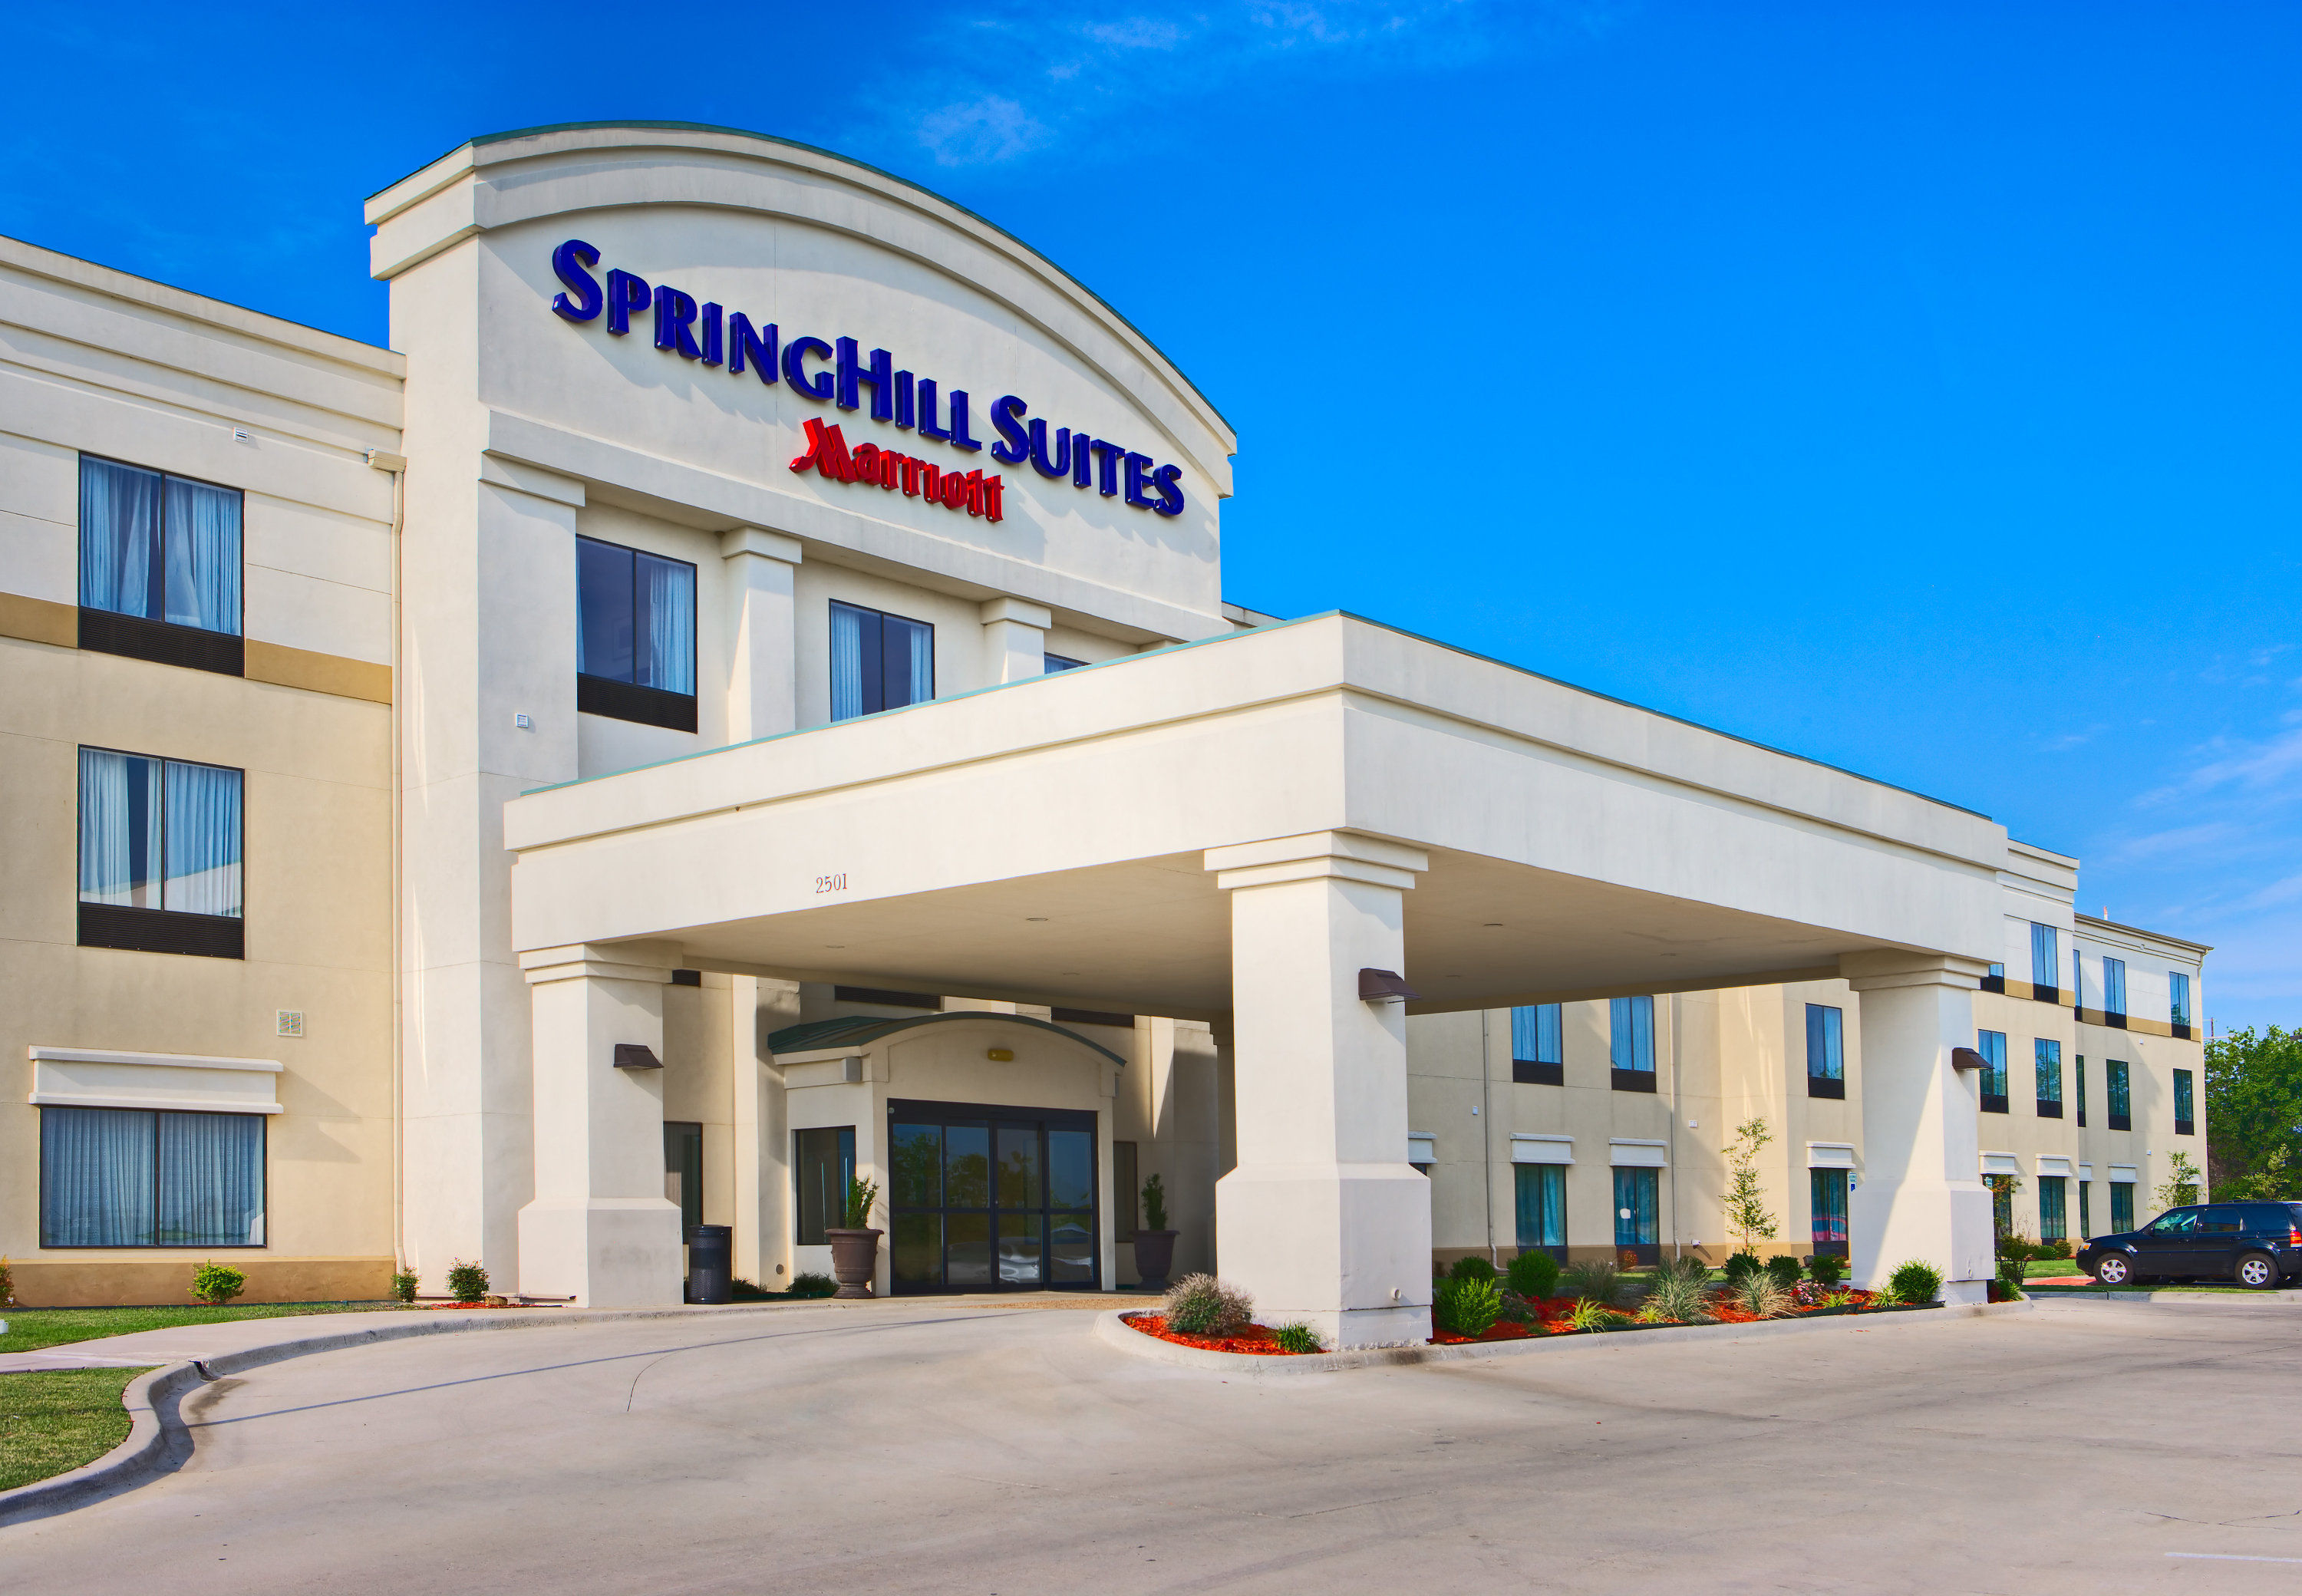 SpringHill Suites by Marriott Ardmore image 10